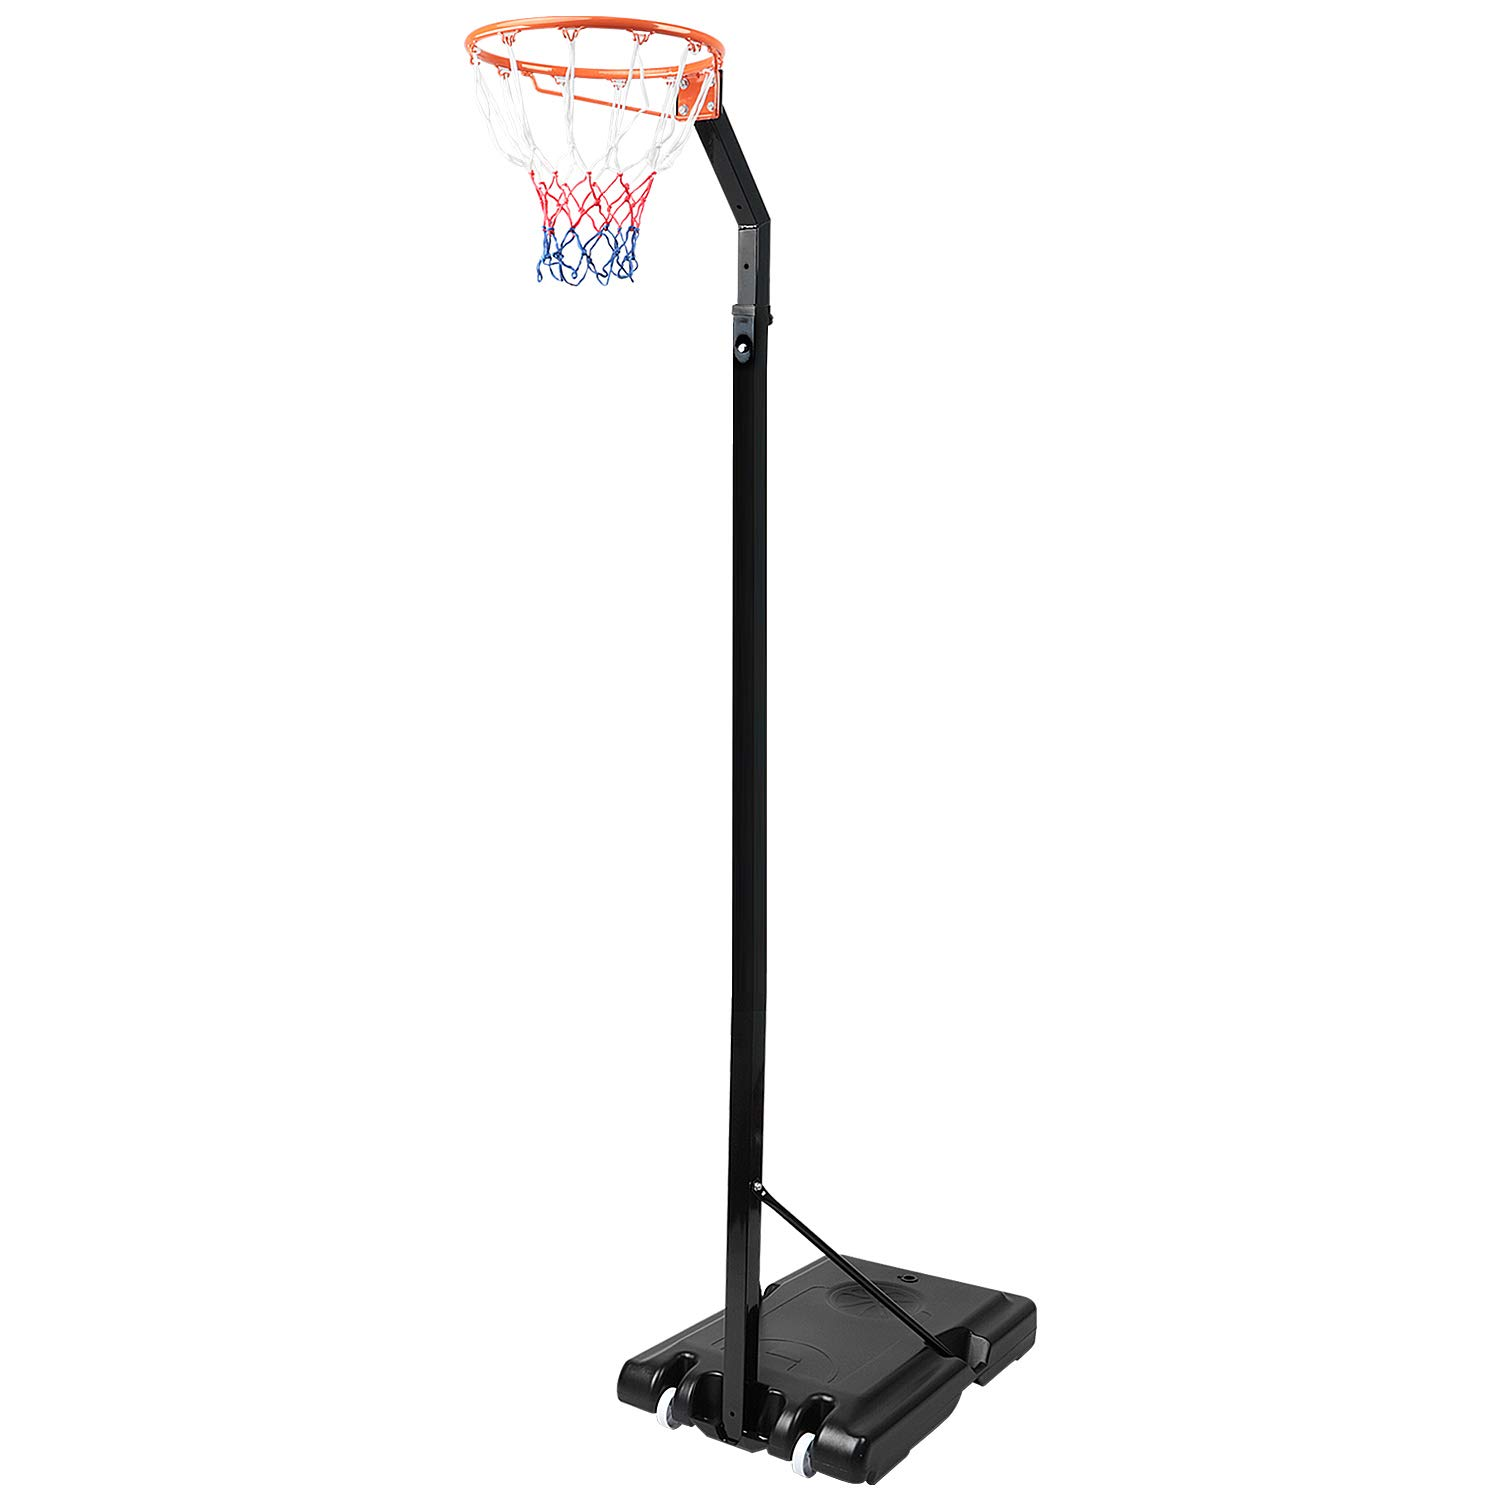 Dripex Adjustable 2.45M-3.05M Portable Basketball Hoop Net Set Professional Outdoor Basketball Stand Netball Post with Wheels for Adjults and Children